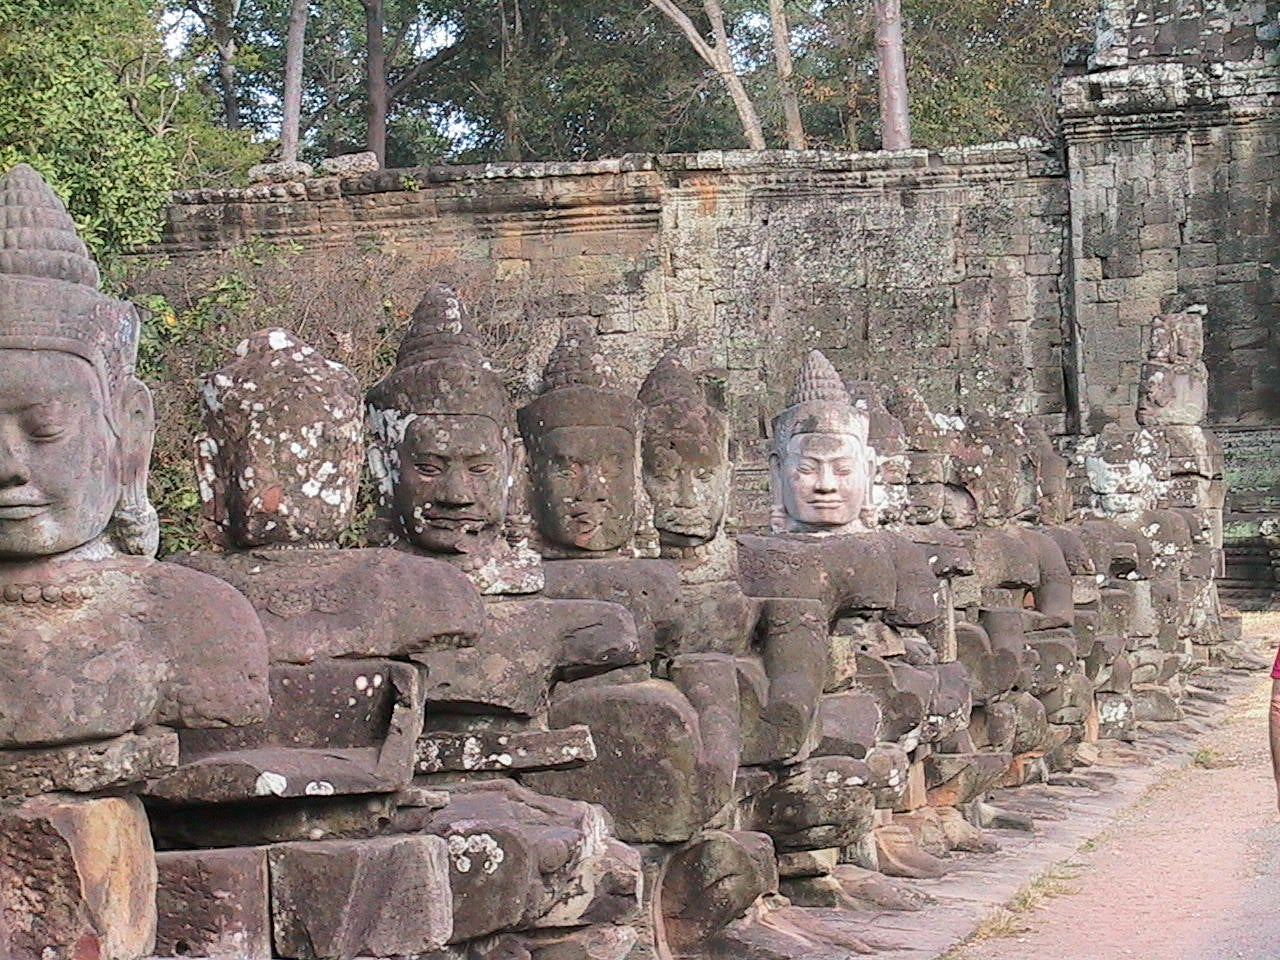 Pared en Angkor Thom